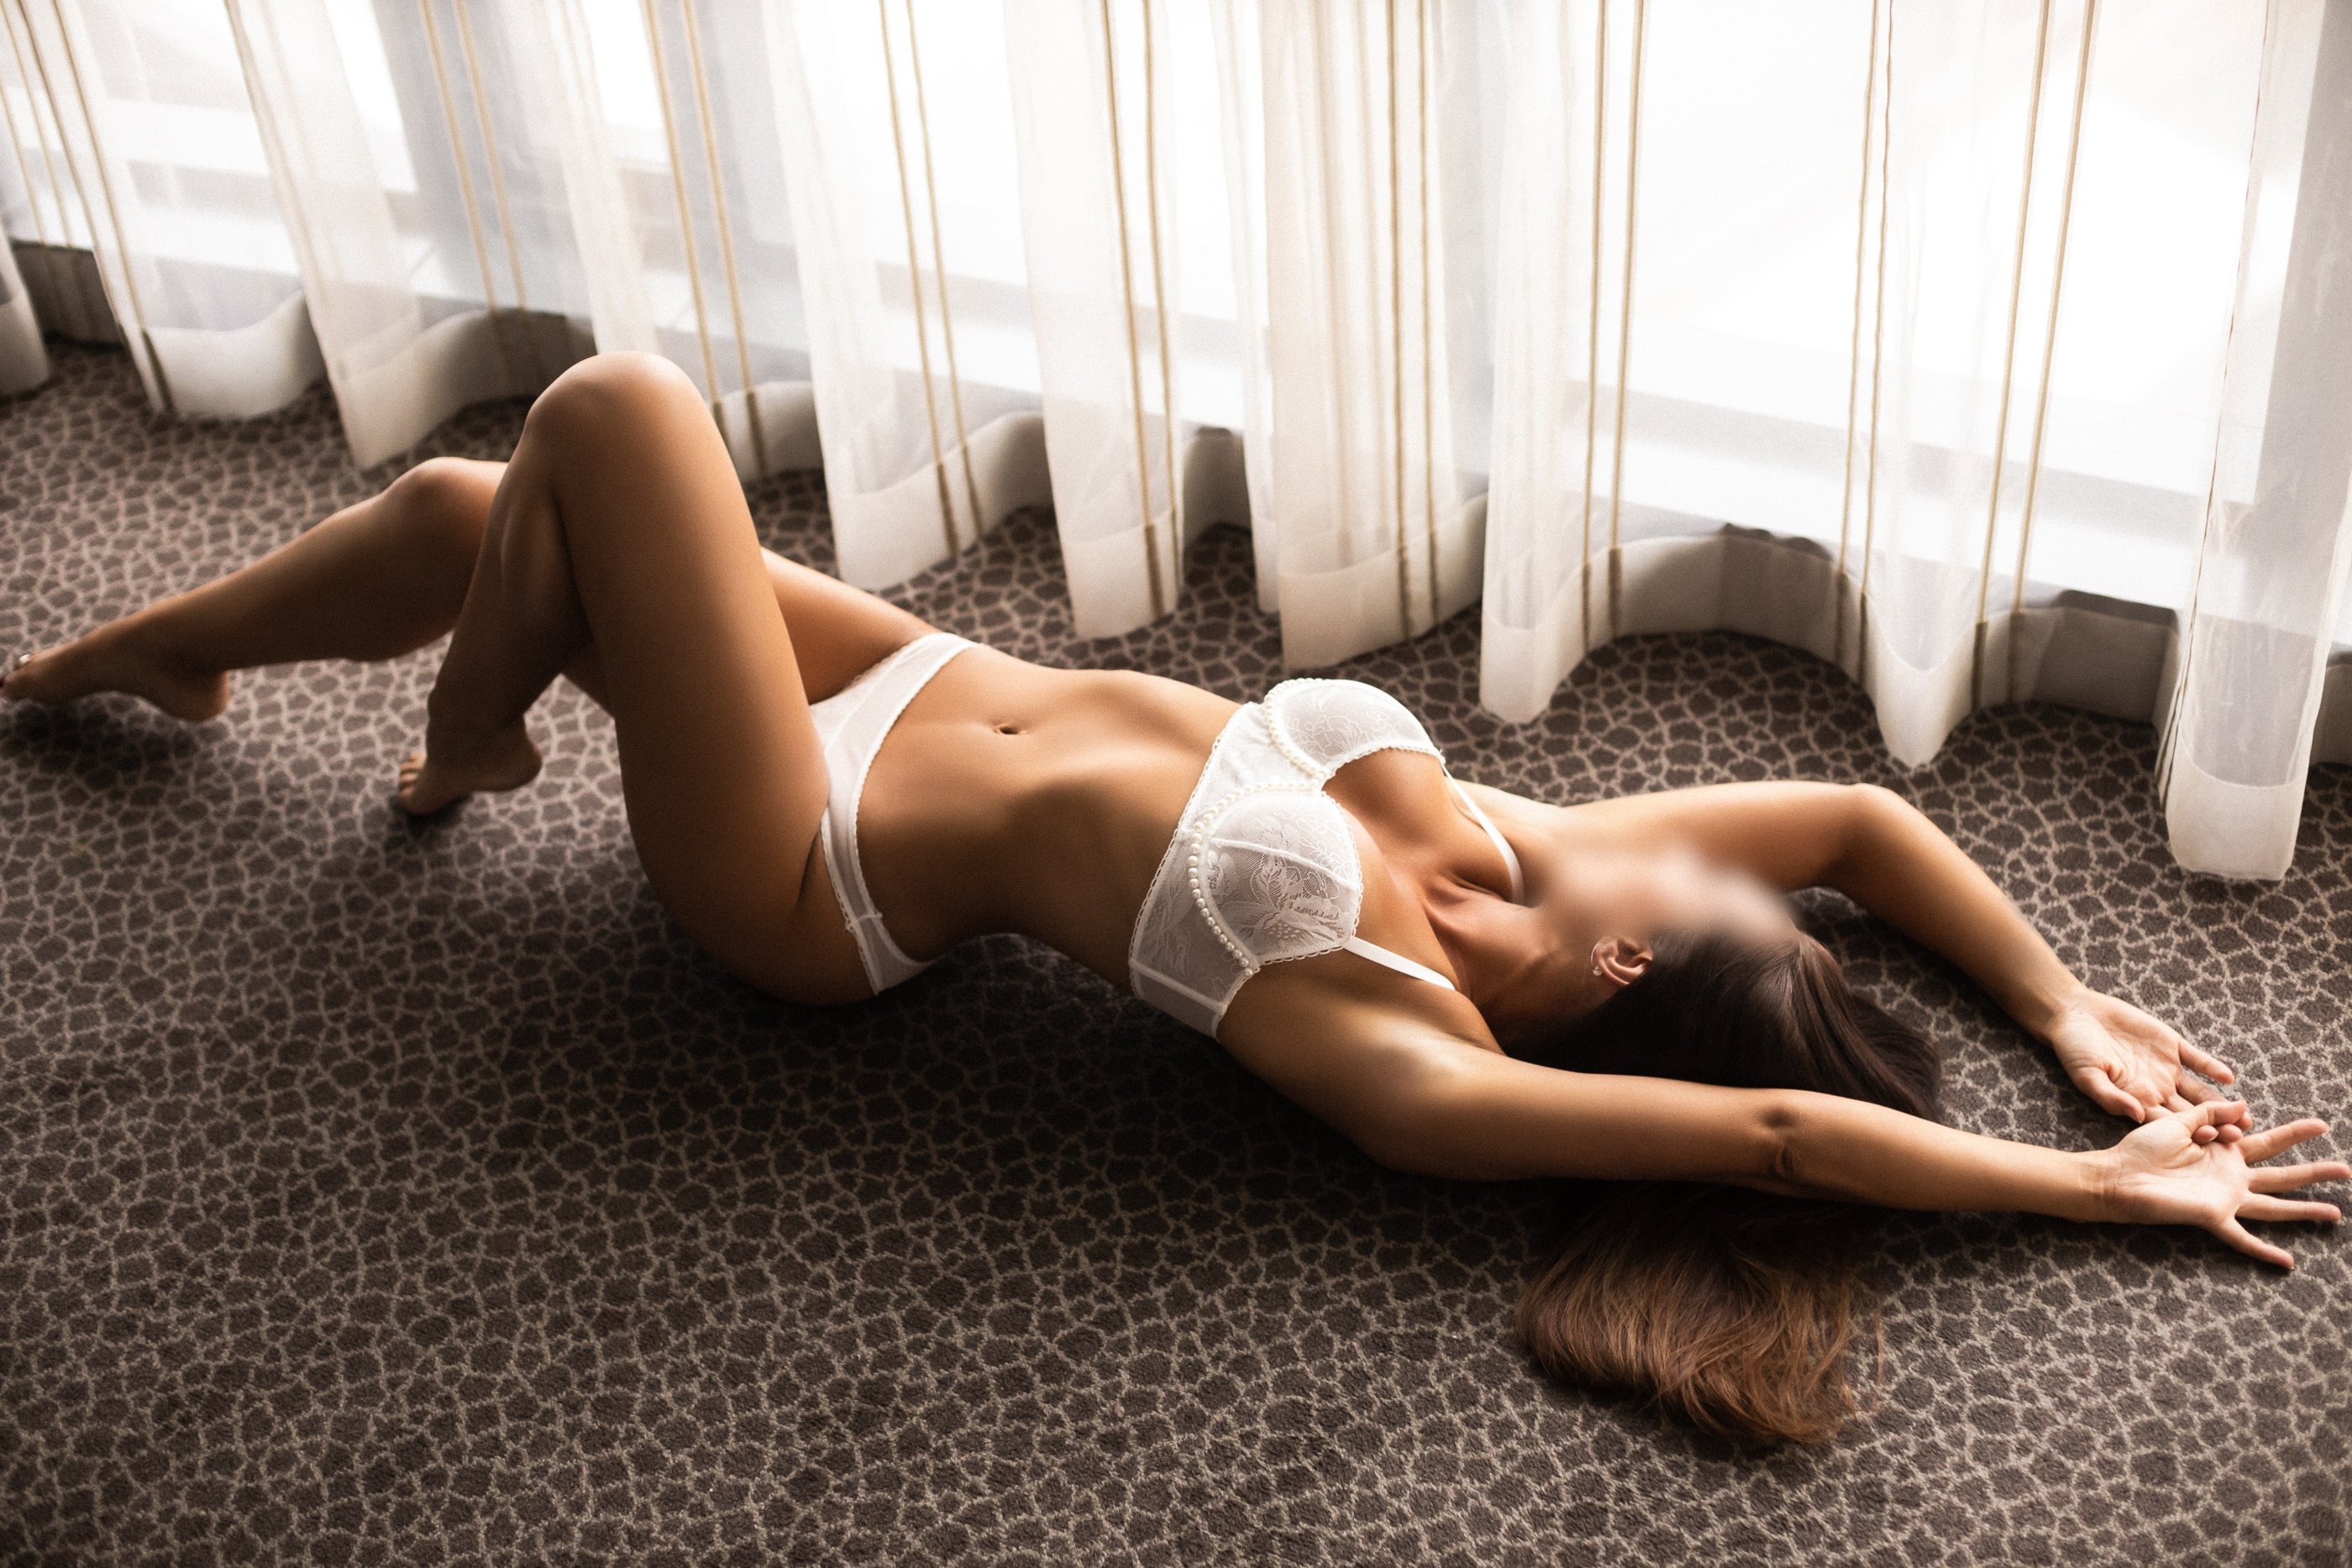 Bedroom Eyes Rachel available in Sydney and Wollongong.